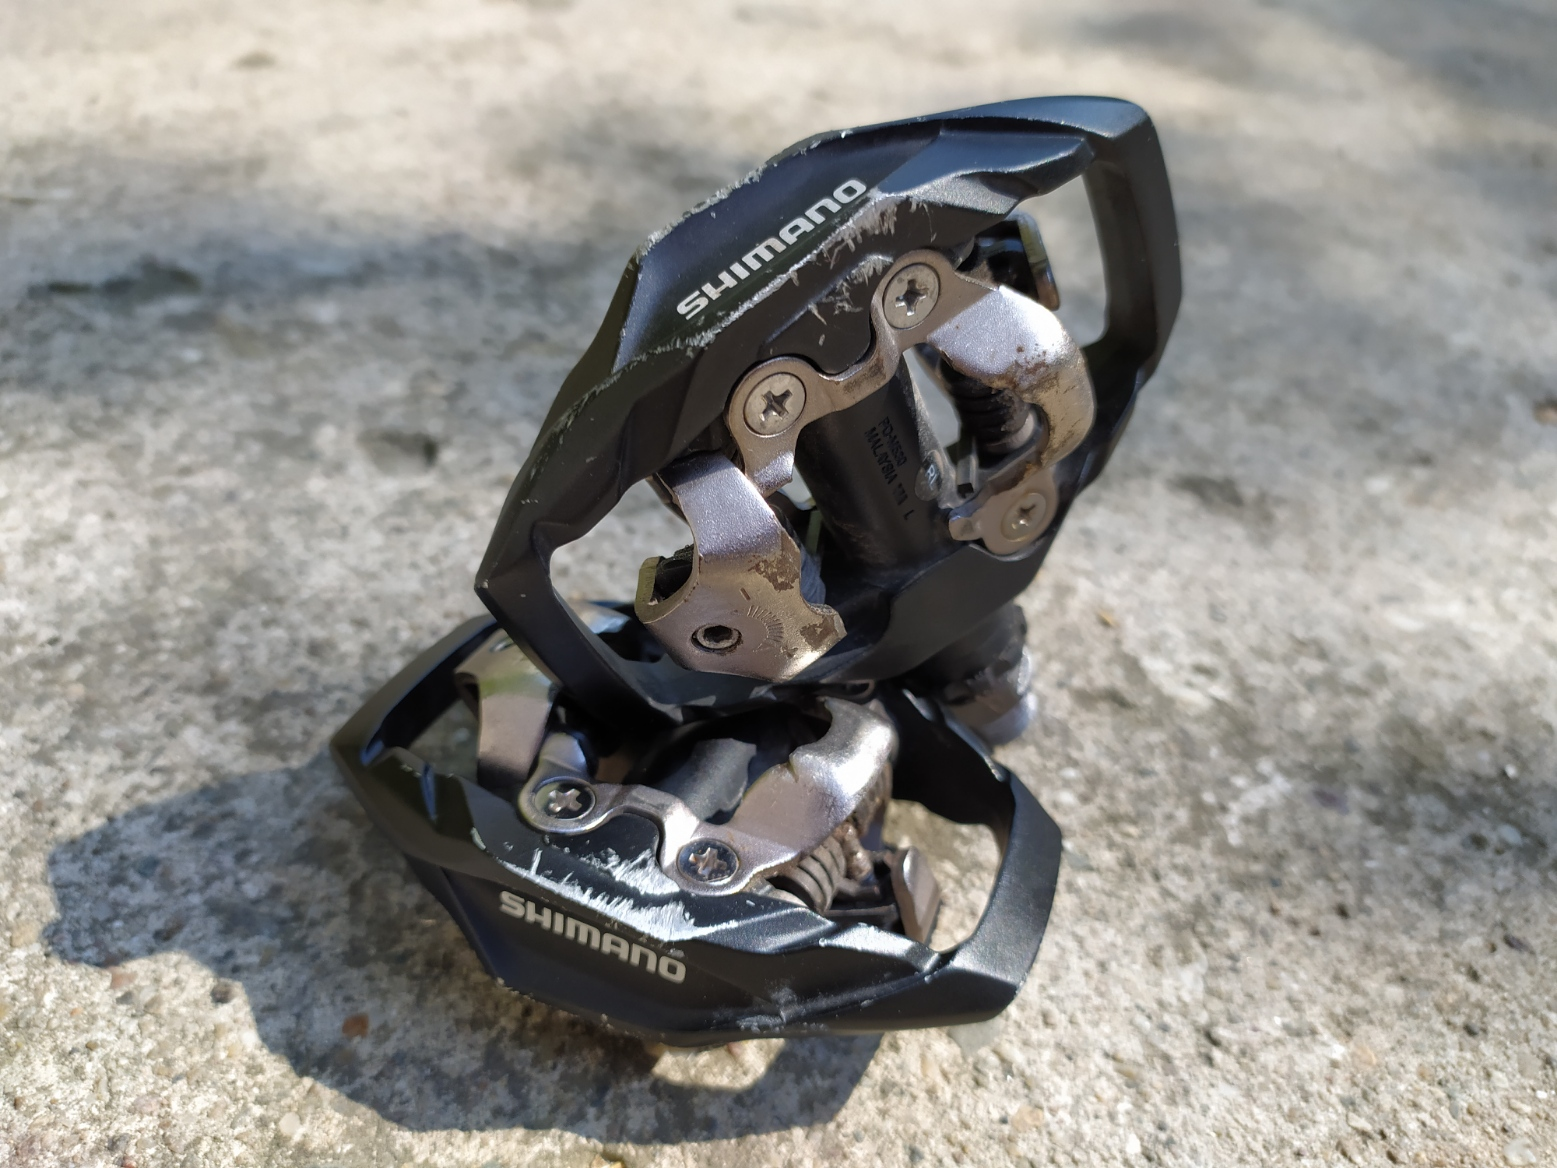 Shimano M530 Pedals Review and test